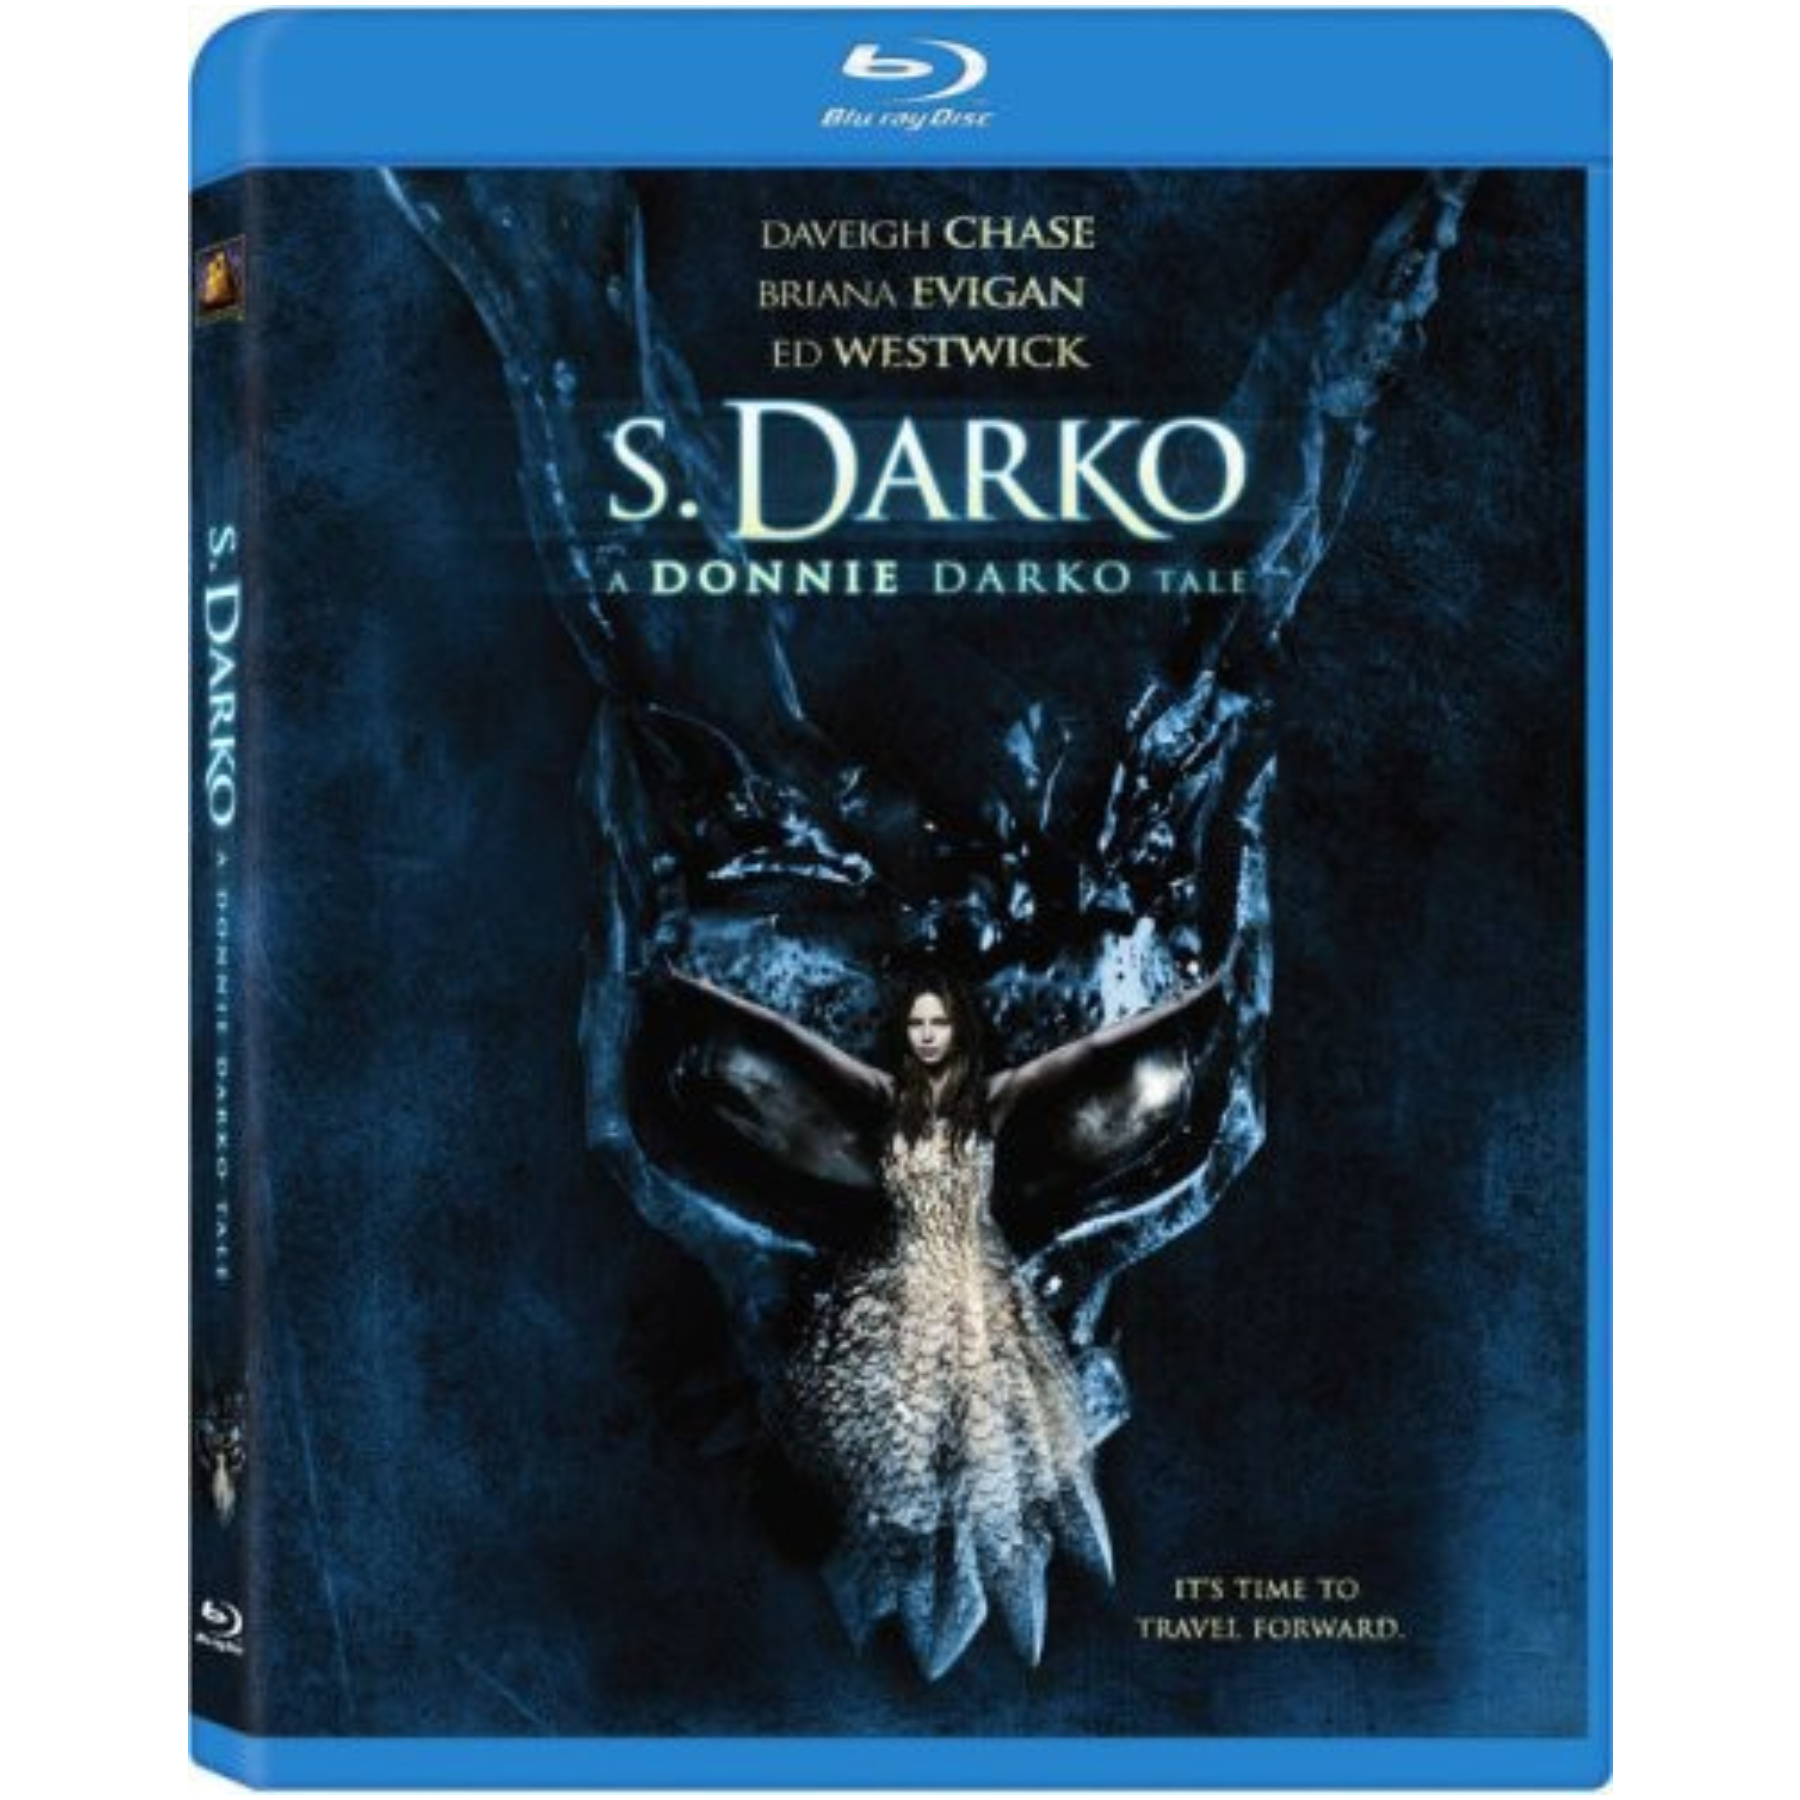 S Darko-Donnie Darko Tale Blu-Ray 02454357986